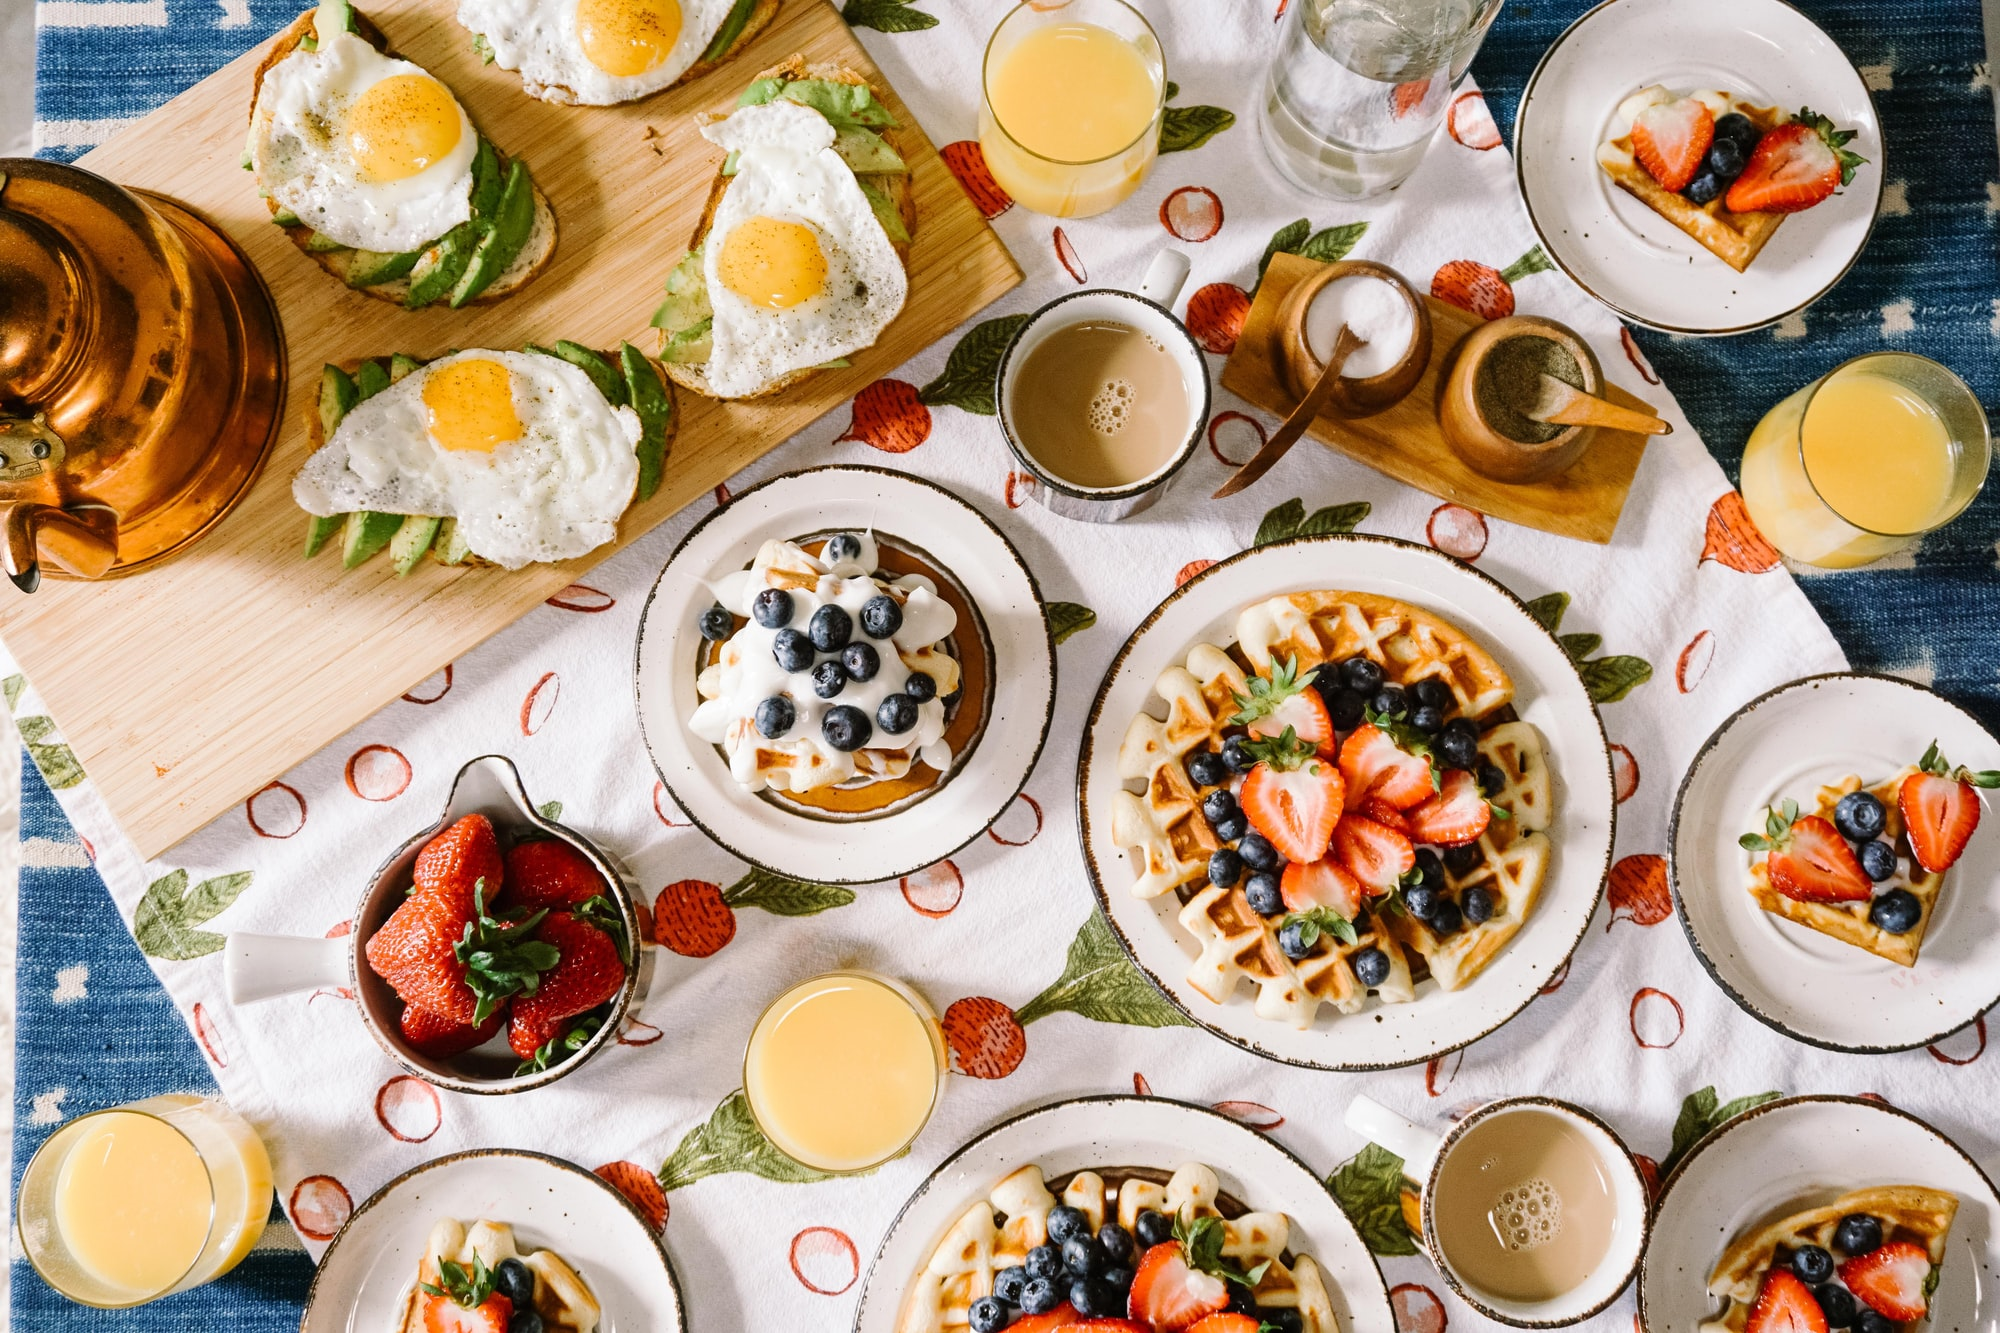 10 Places in Houston to enjoy a Sunday brunch